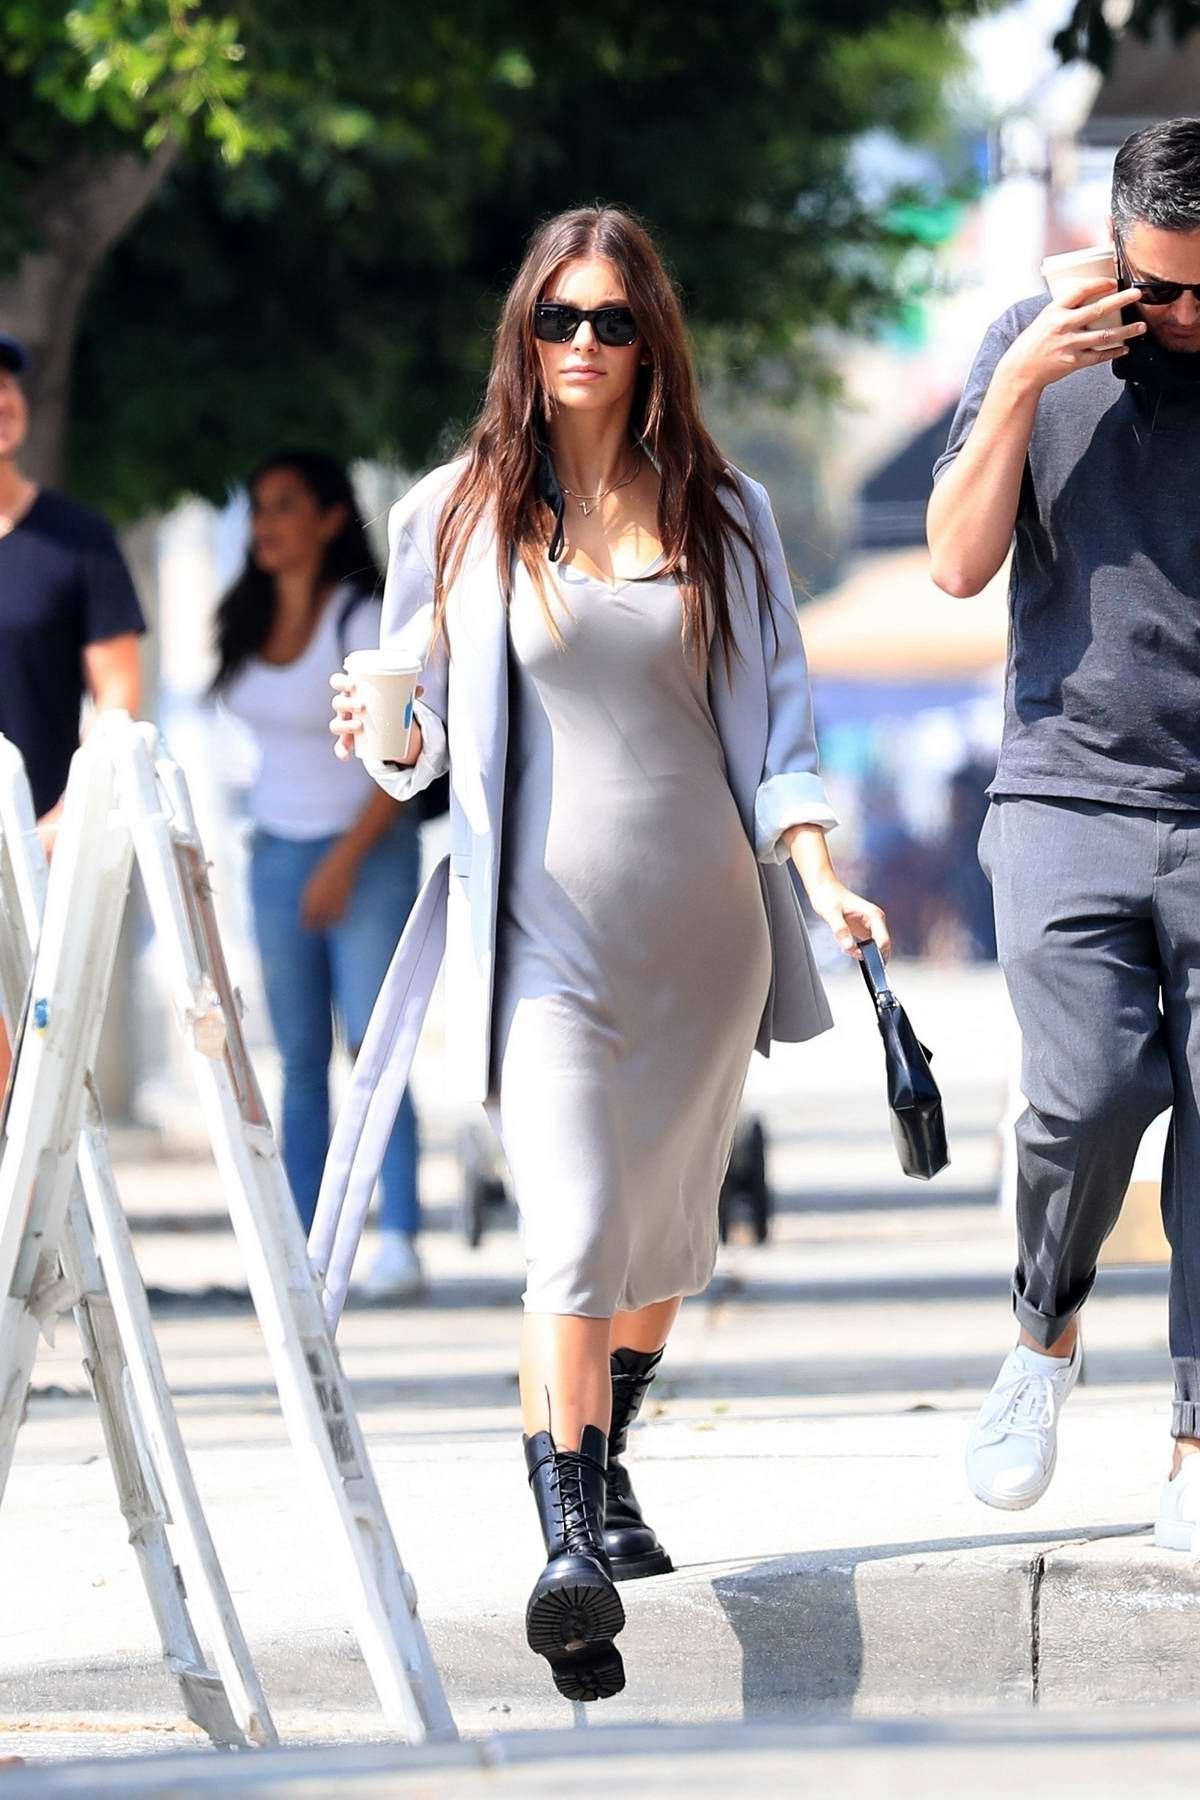 Camila Morrone looks chic while out for some coffee with her stylist in West Hollywood, California